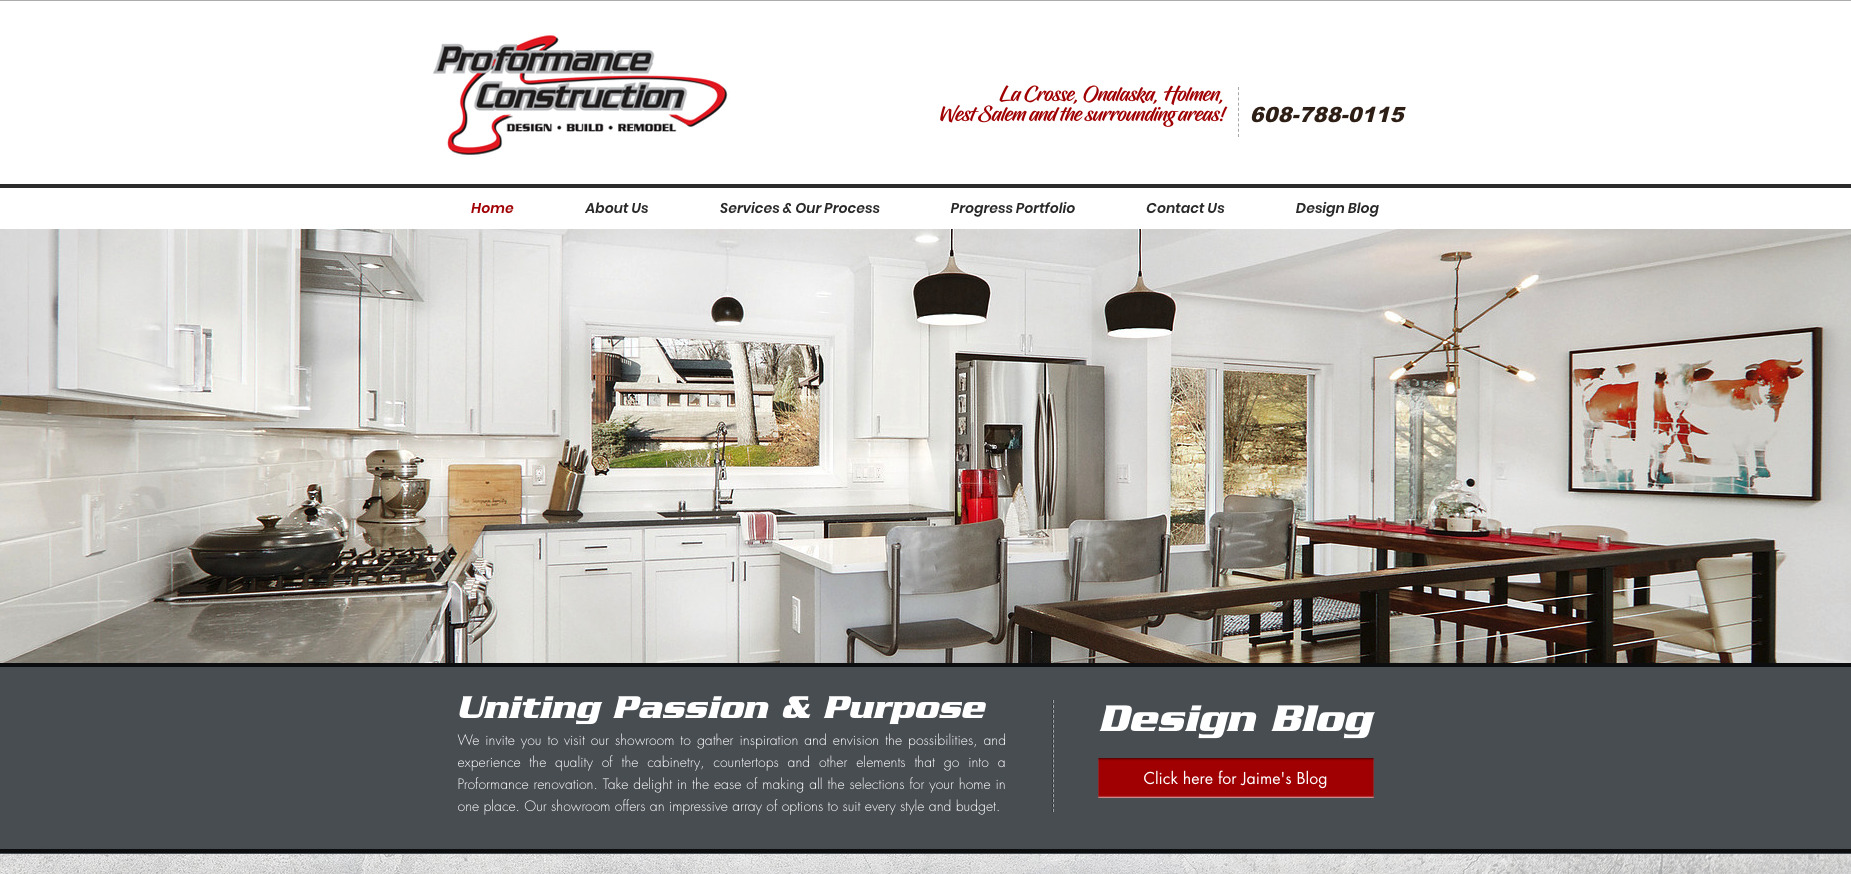 Proformance Construction Homepage